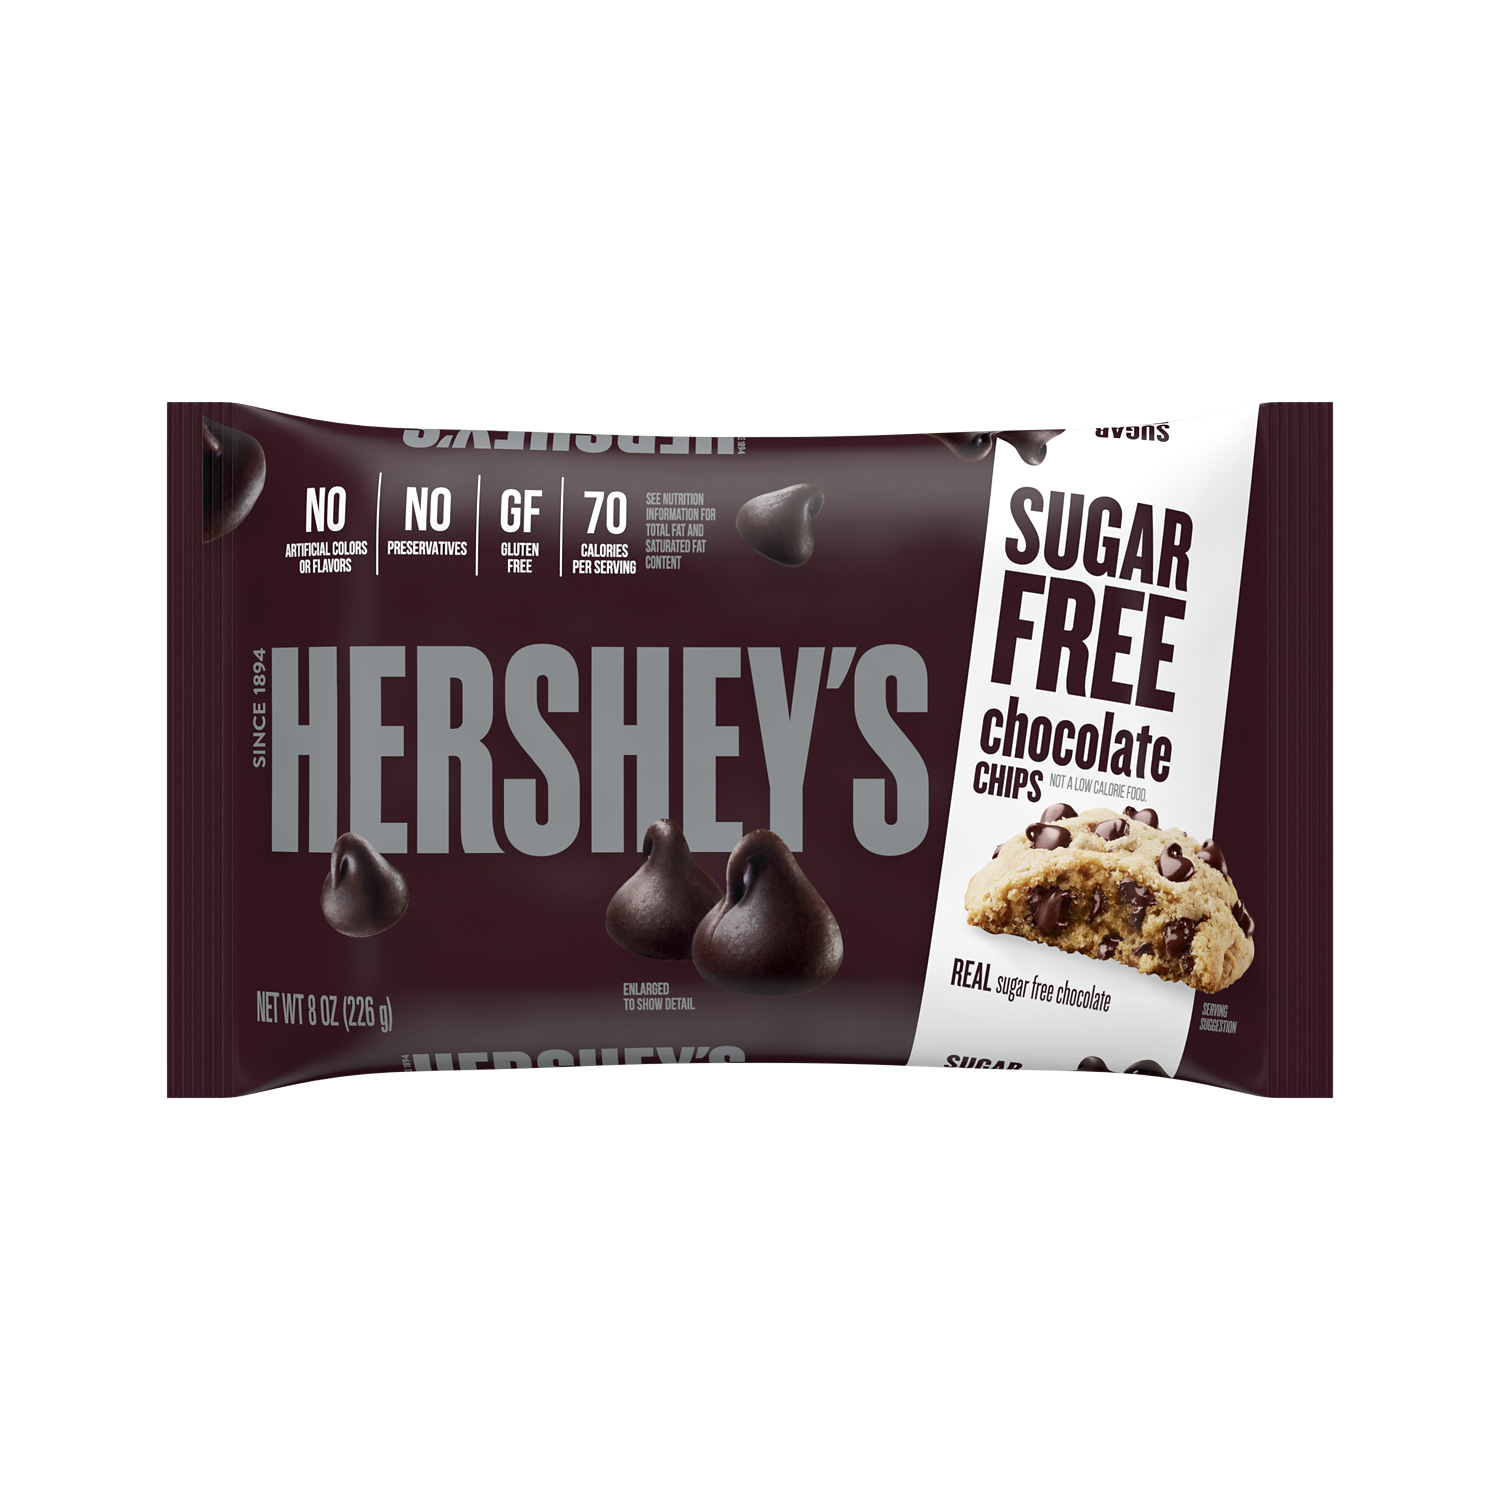 HERSHEY'S Sugar Free Chocolate Chips, 8 oz bag - Front of Package